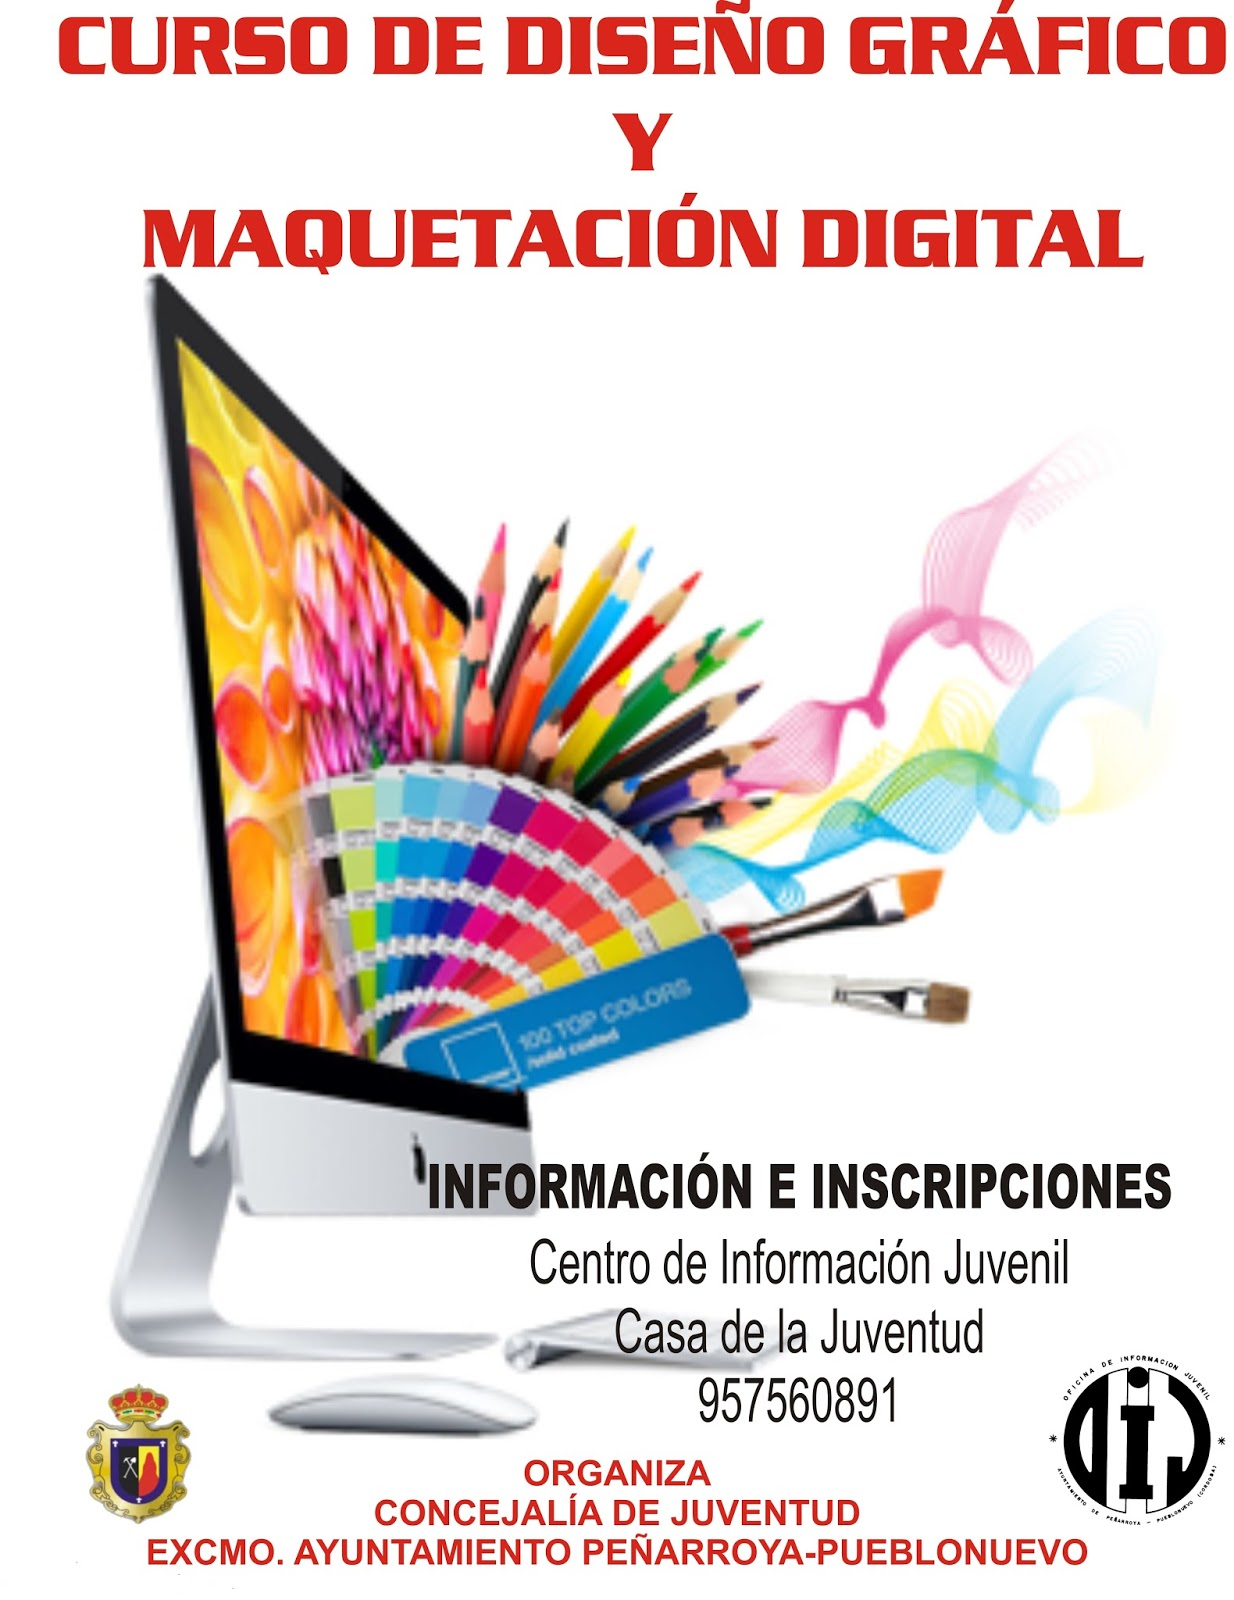 Cursos de dise o grafico madrid for Curso de diseno grafico